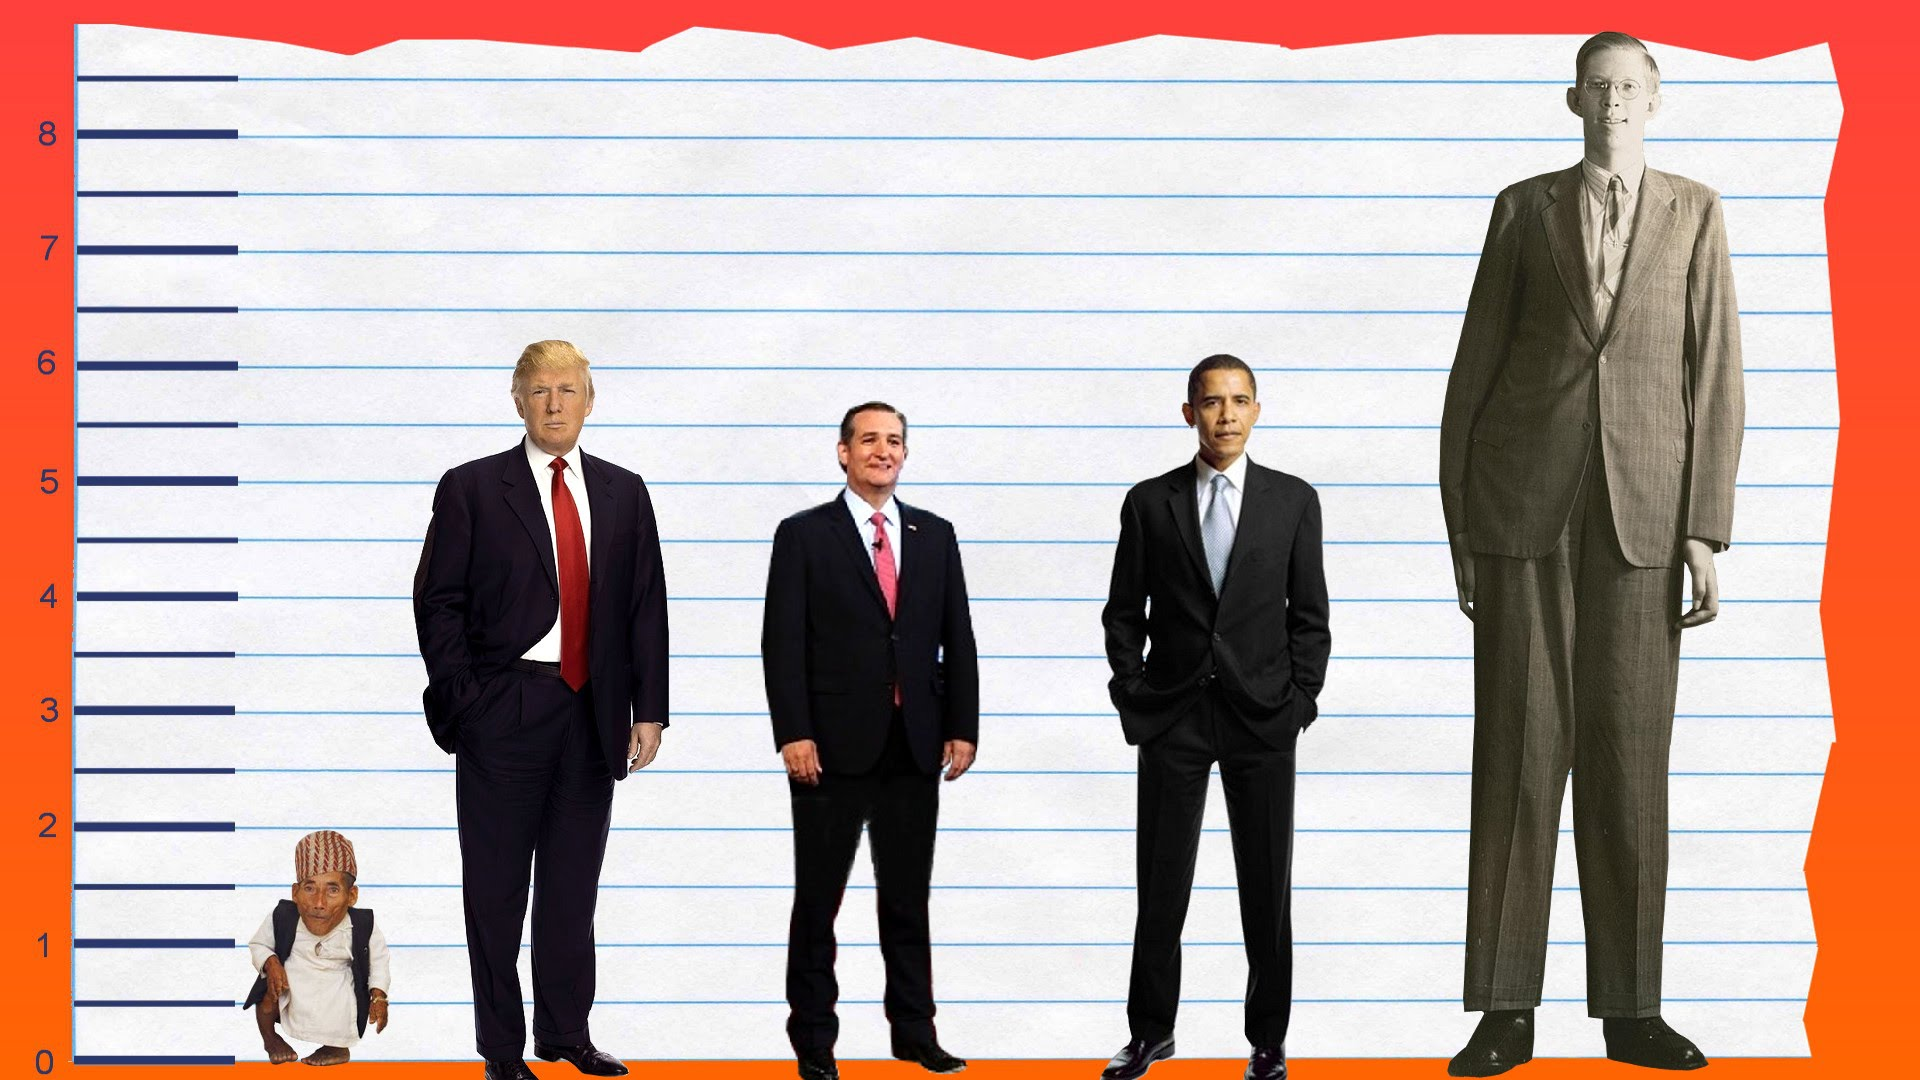 OMG! Politico Claims Yuge Scoop on Trump's Height, and It's Hysterical. [VIDEO]